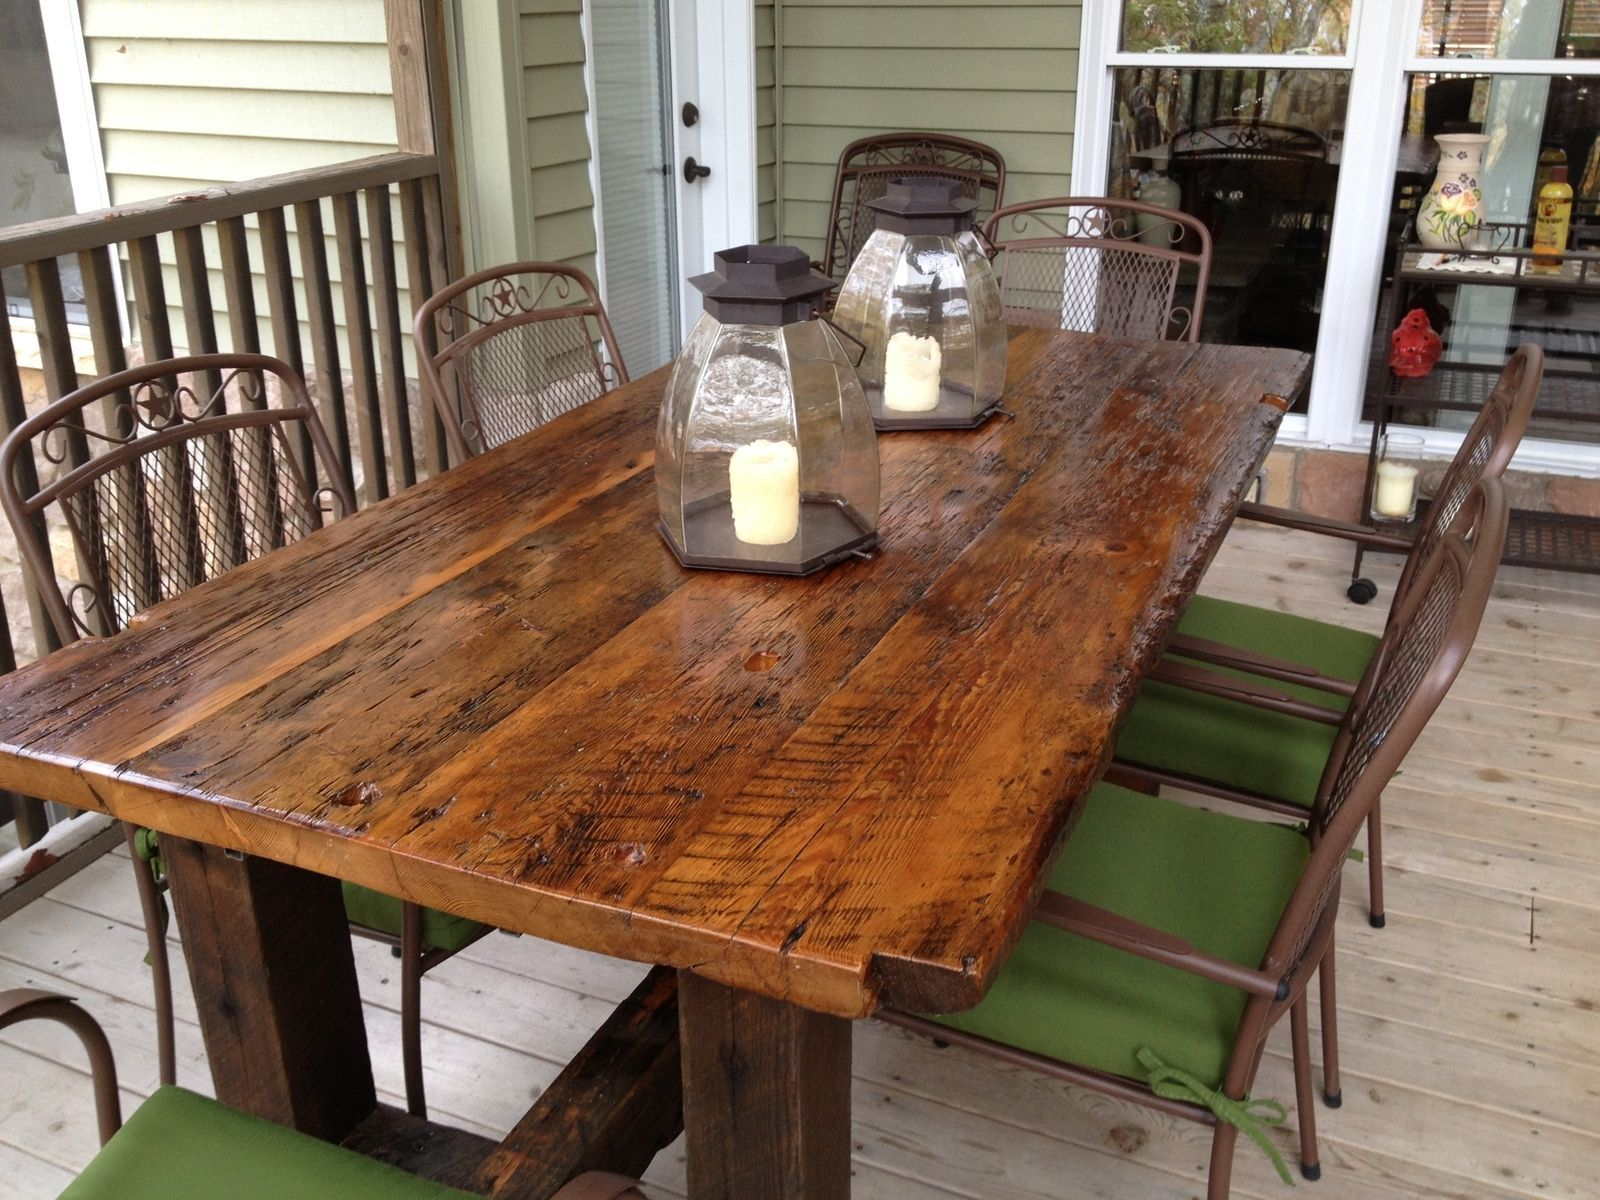 Images about old barn wood furniture on pinterest - Custom Made Reclaimed Trestle Table